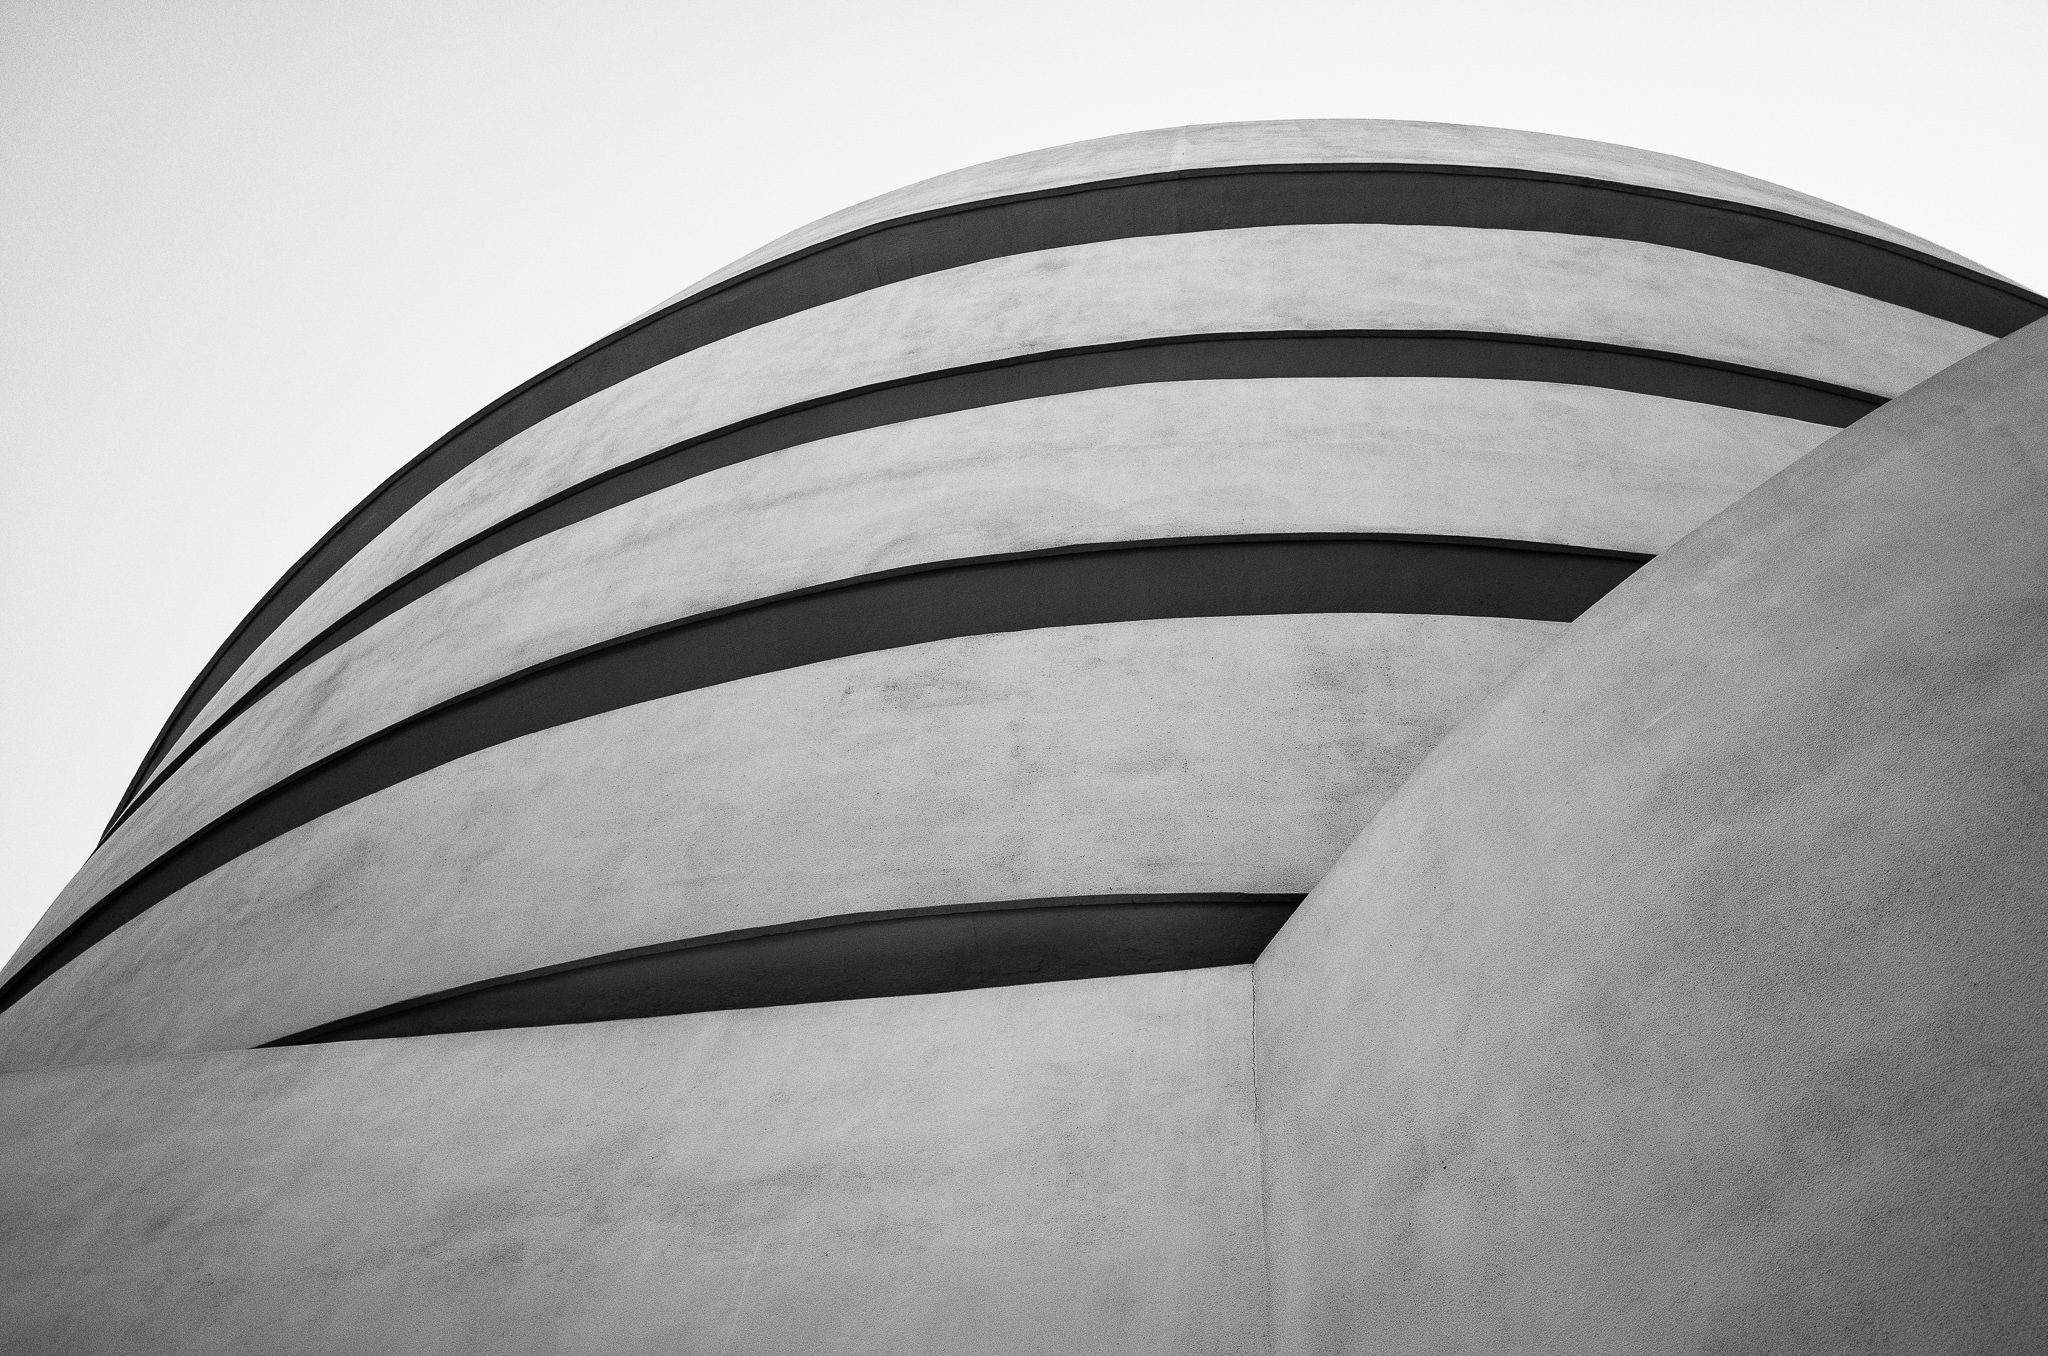 Near the Entrance to the Guggenheim